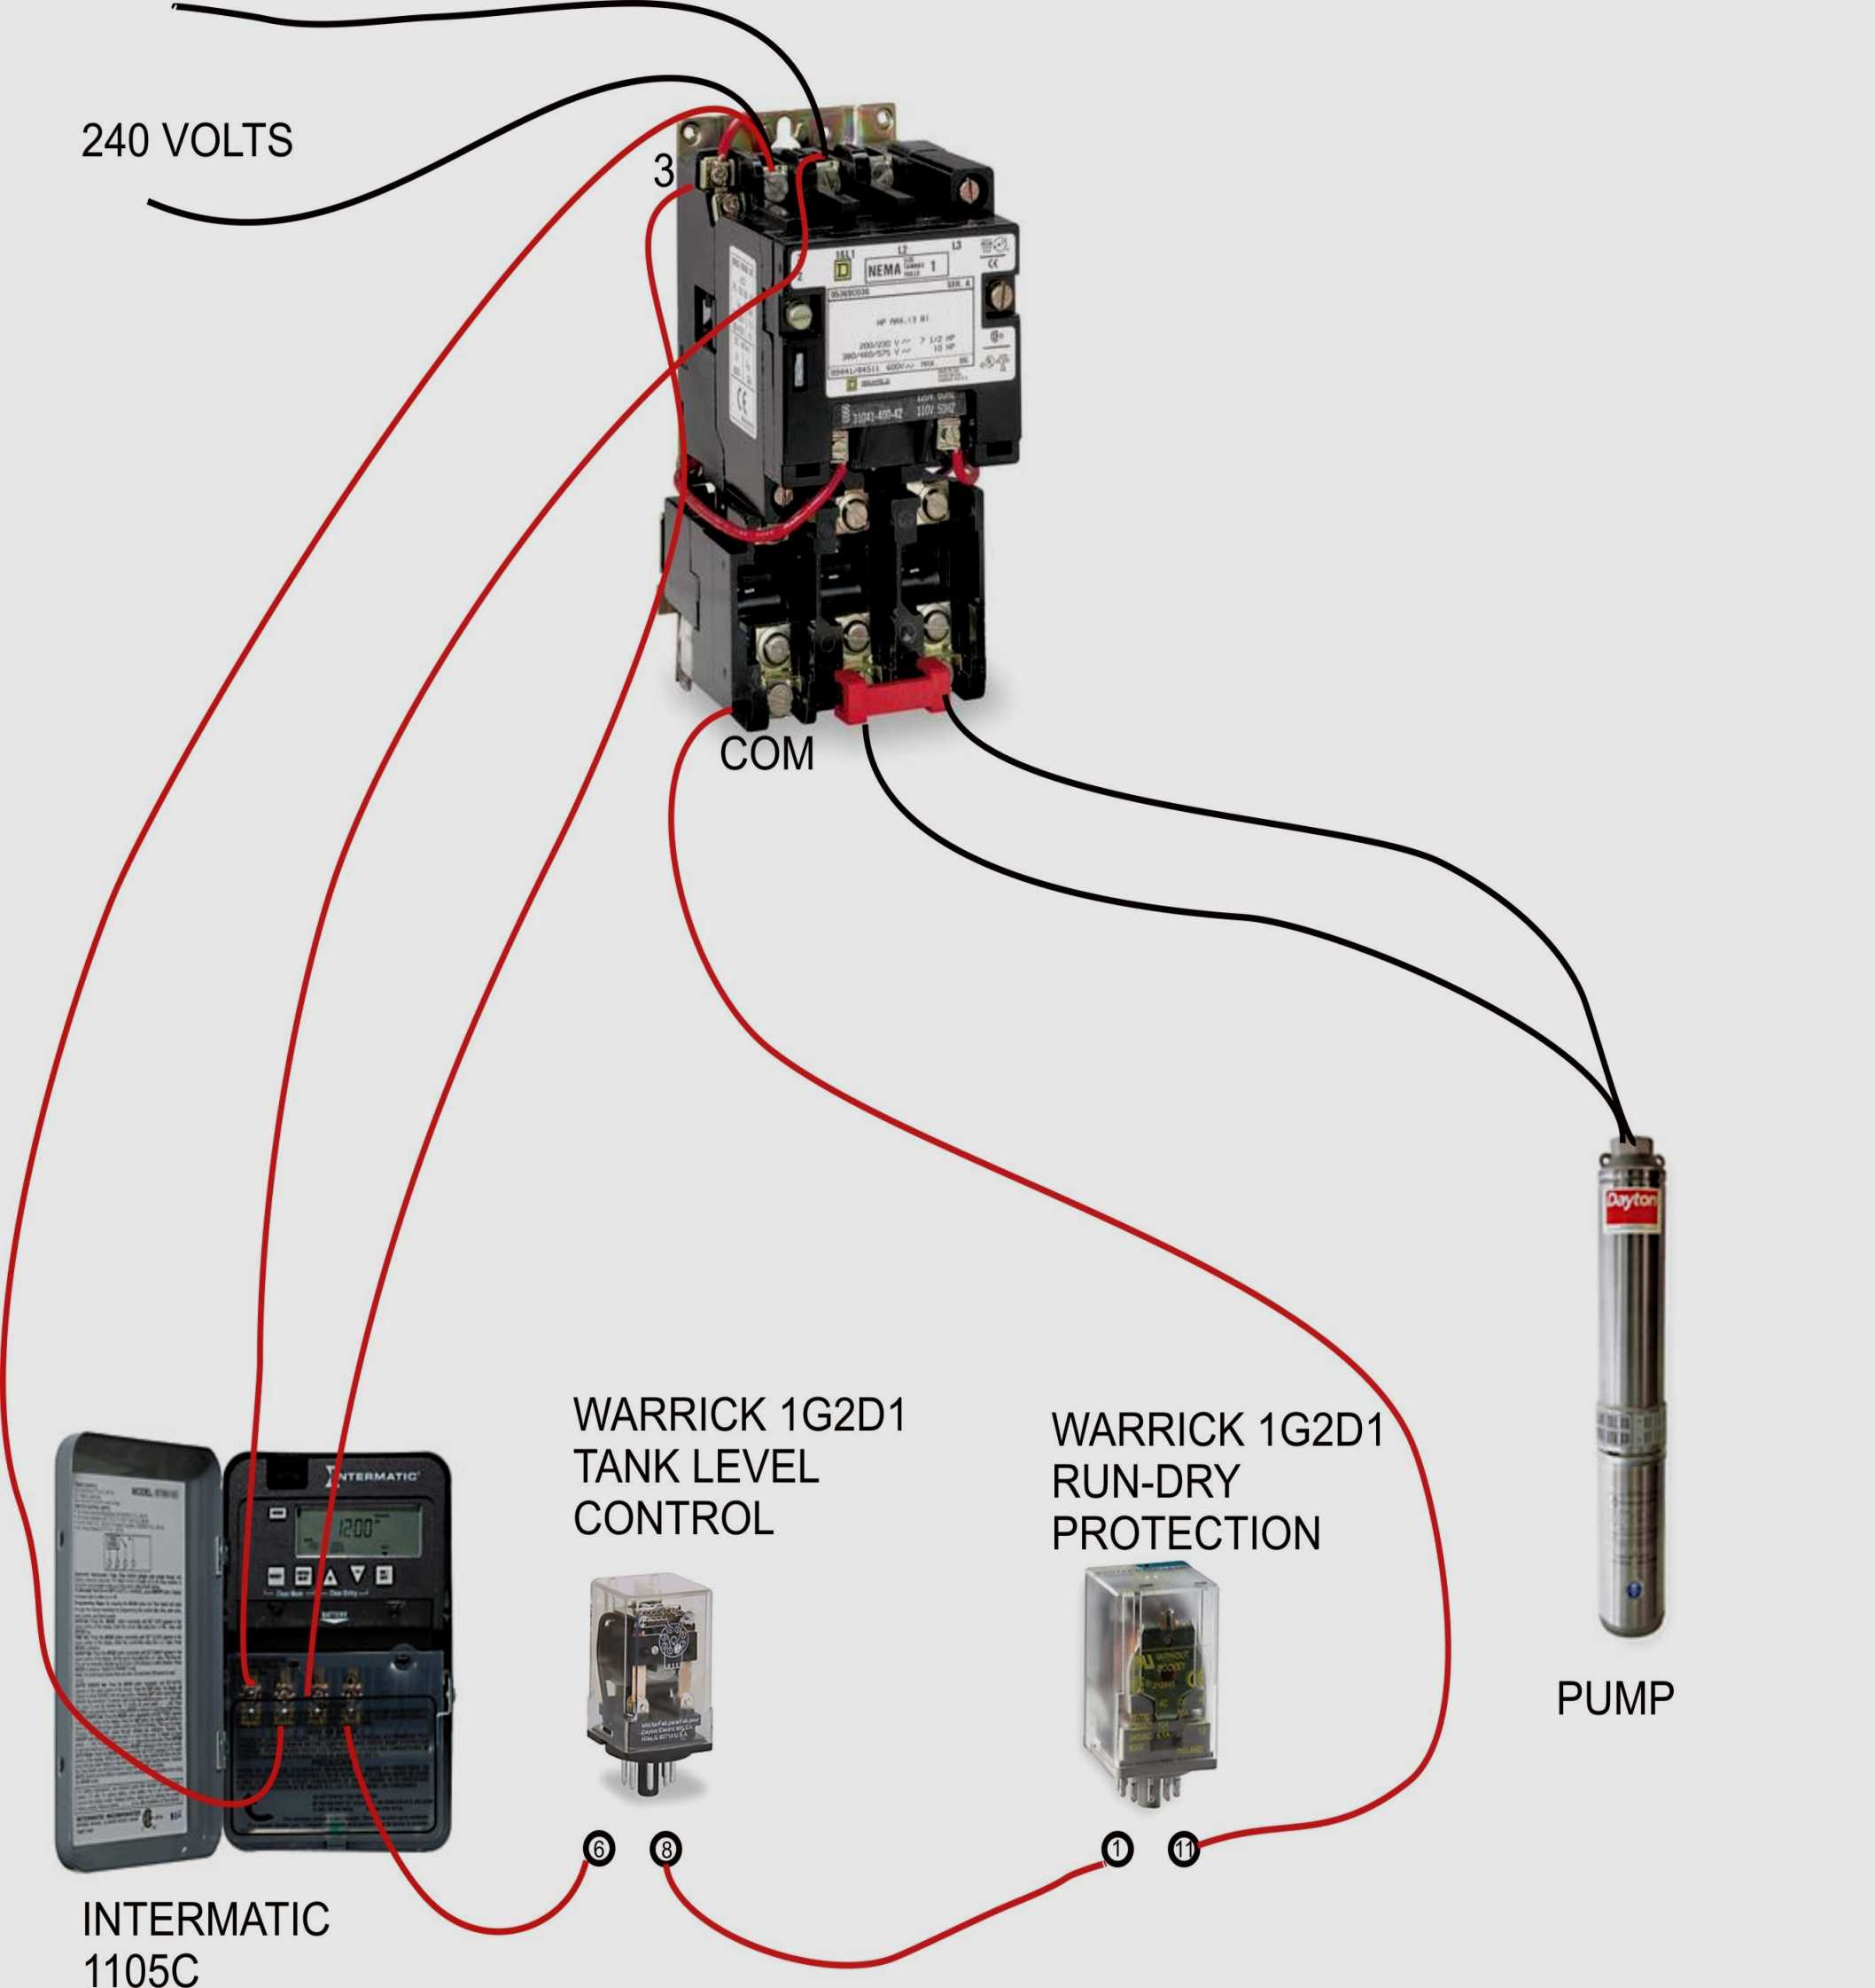 Square D Lighting Contactor Wiring Diagram   Wiring Diagram - Square D Motor Starter Wiring Diagram